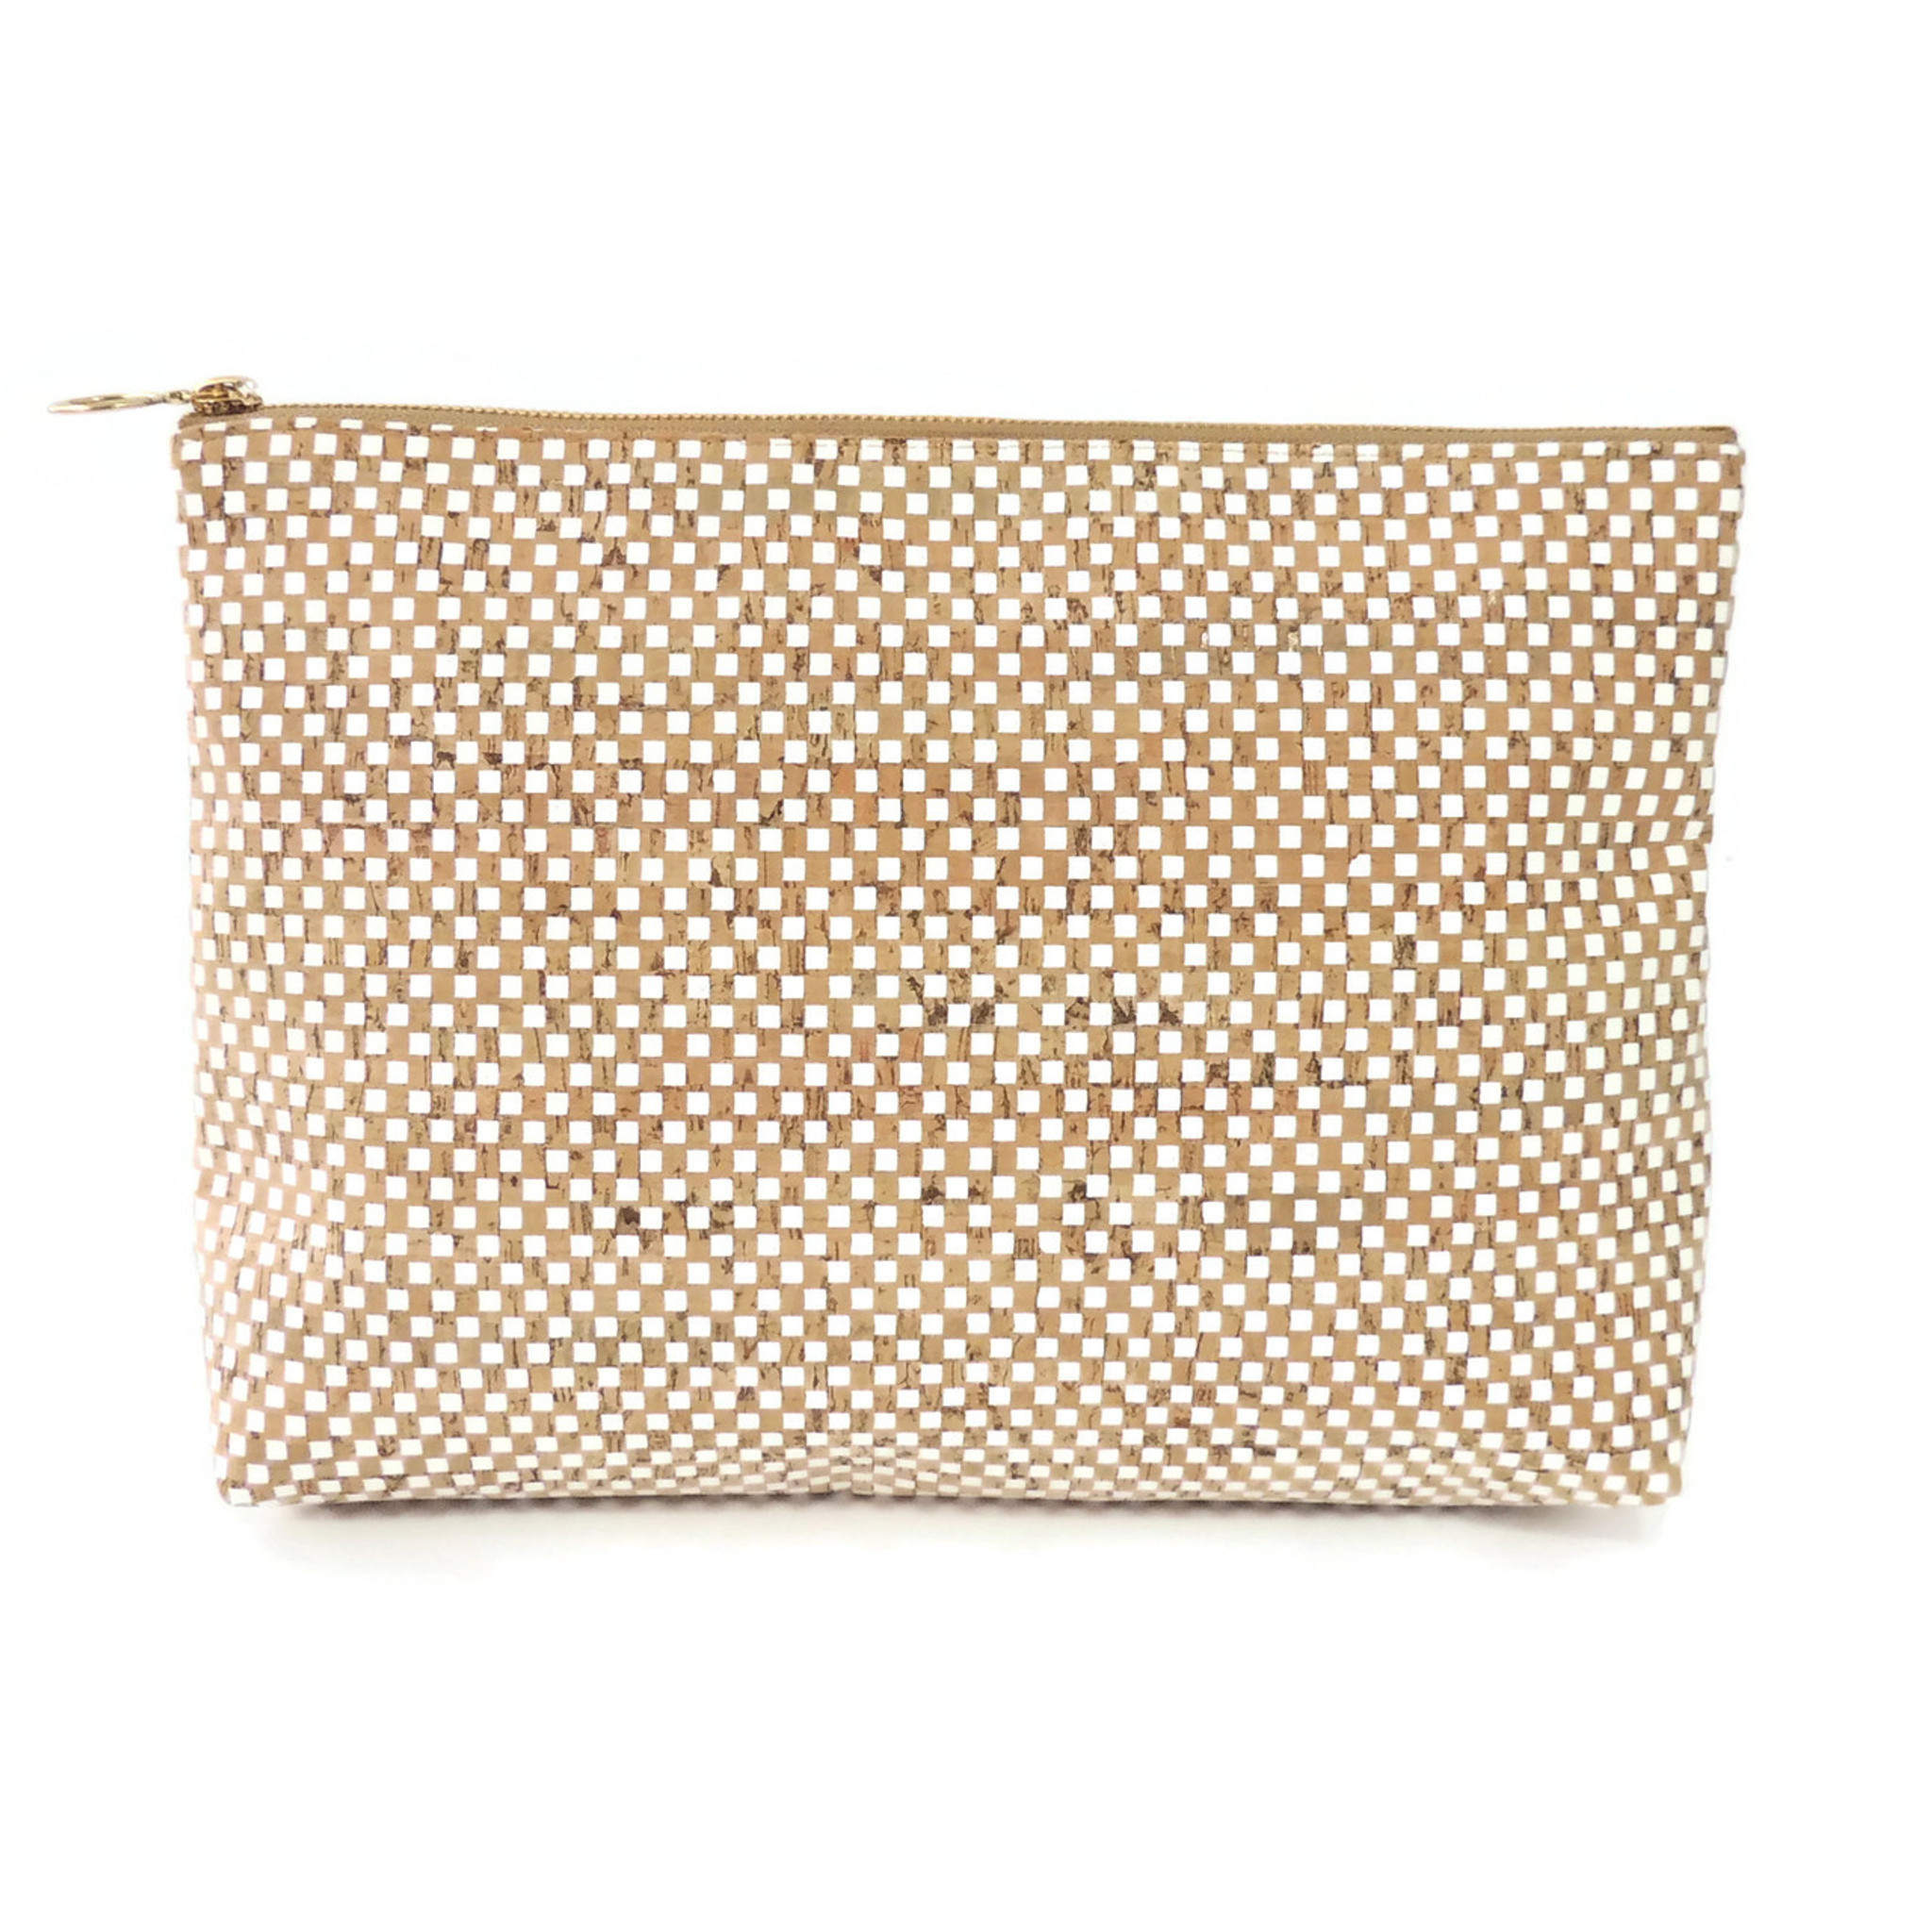 Carryall Clutch in White Check Cork